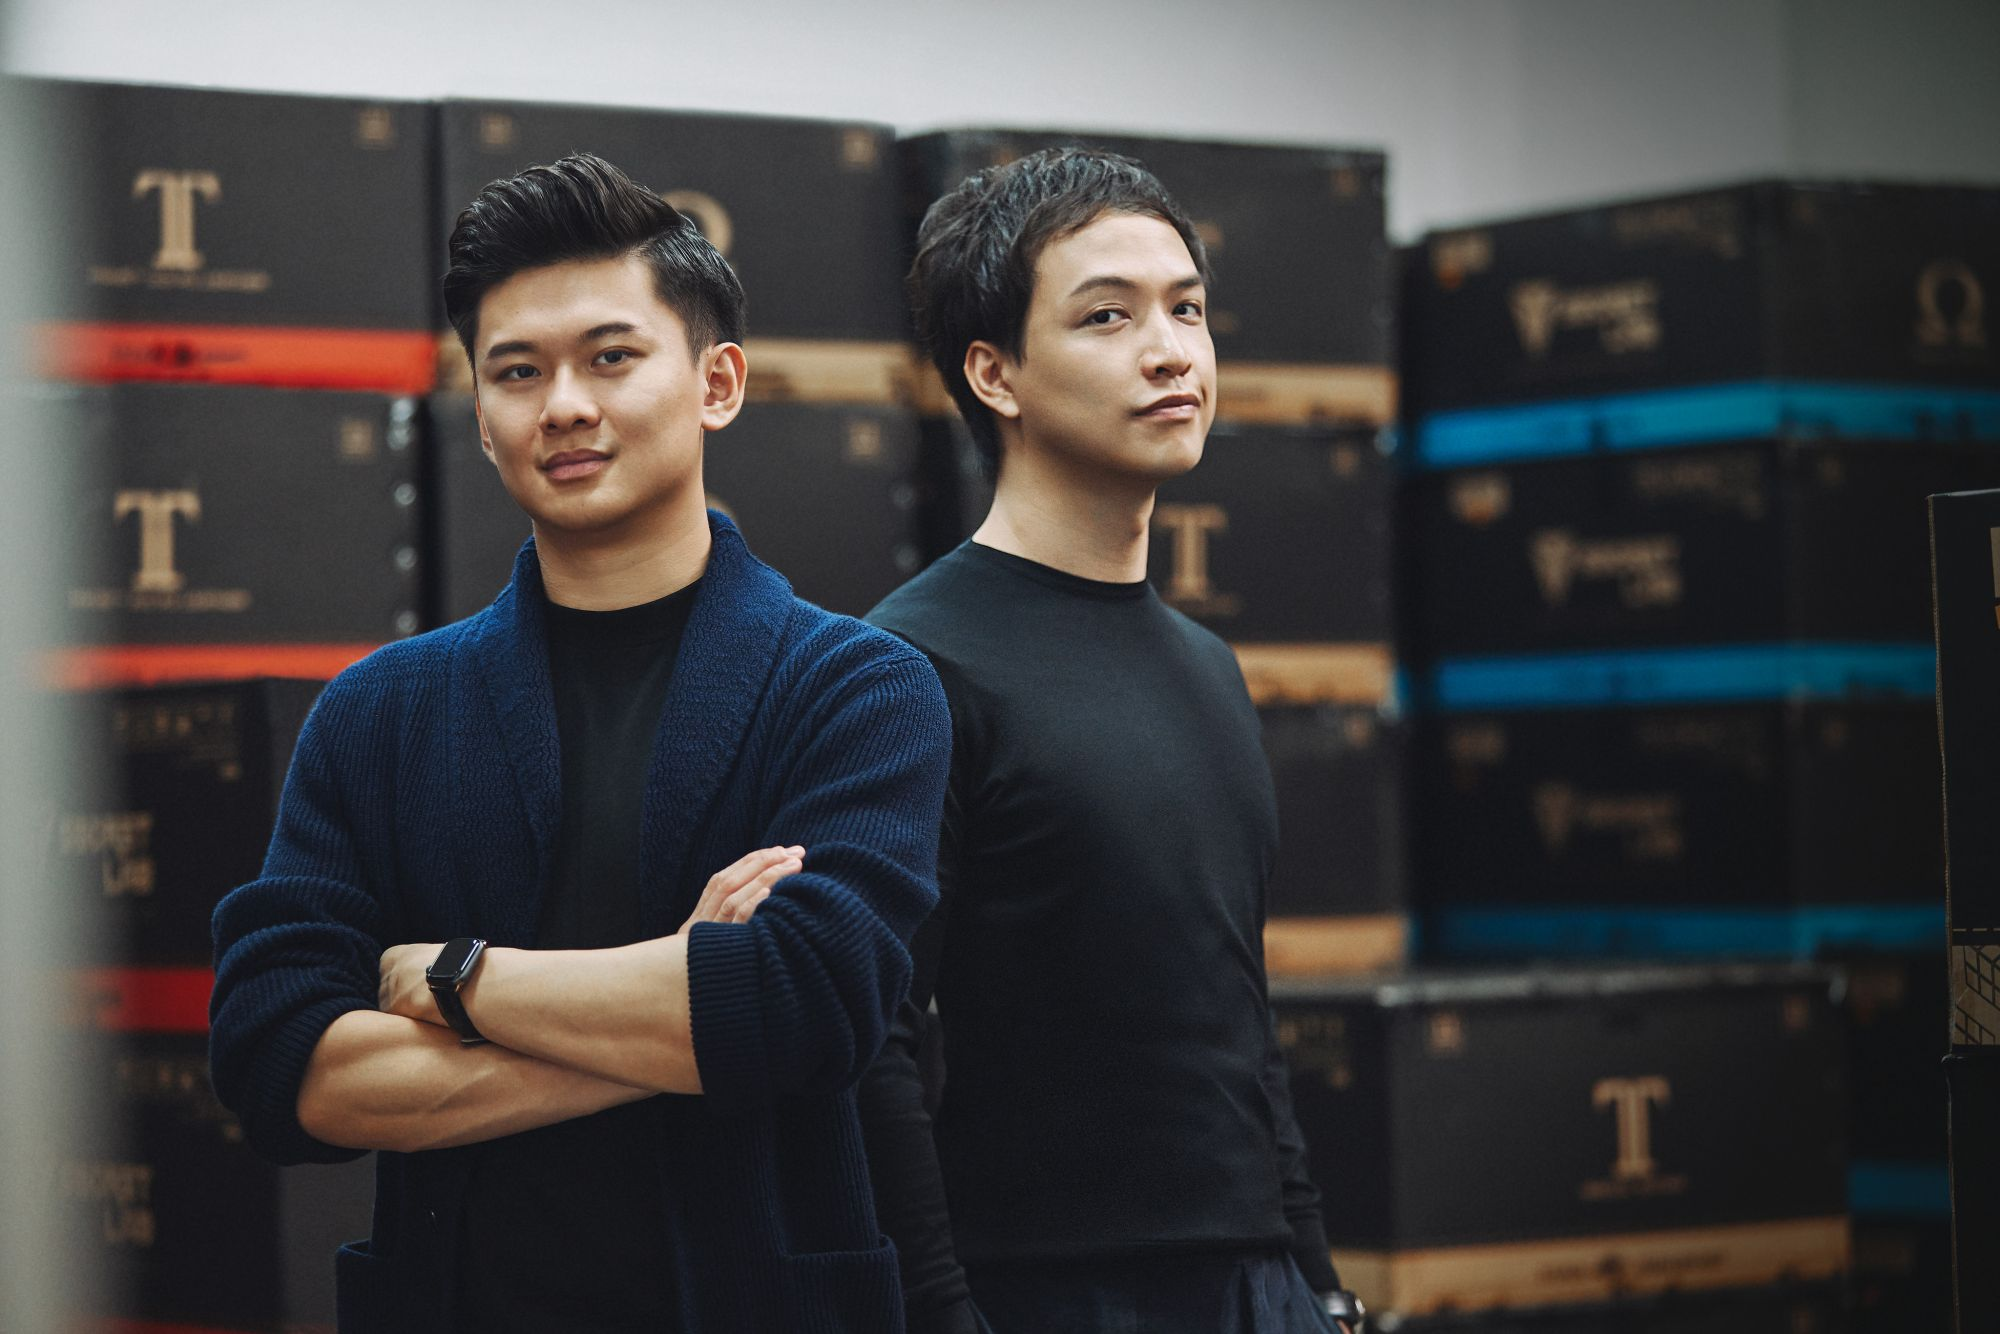 Secretlab Co-Founders Ian Ang And Alaric Choo On The Meteoric Rise Of Their Gaming Chair Company